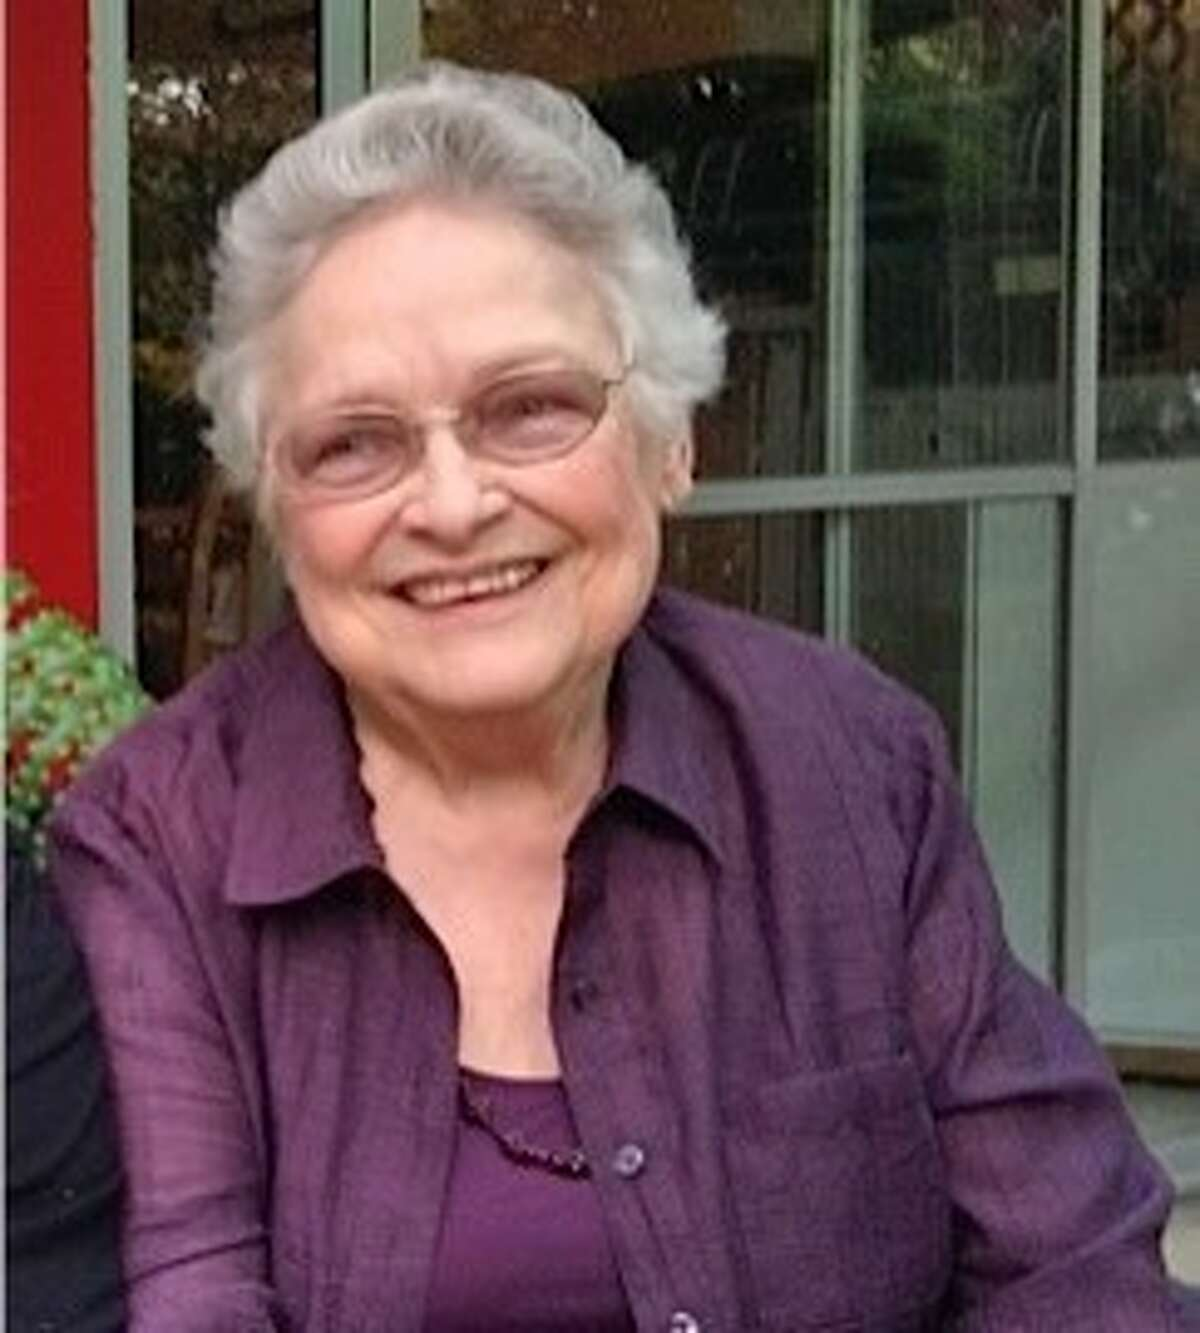 Obit photo for Rosemary J. Stauber, who died Sept. 26, 2015, in San Antonio. Stauber was 84.